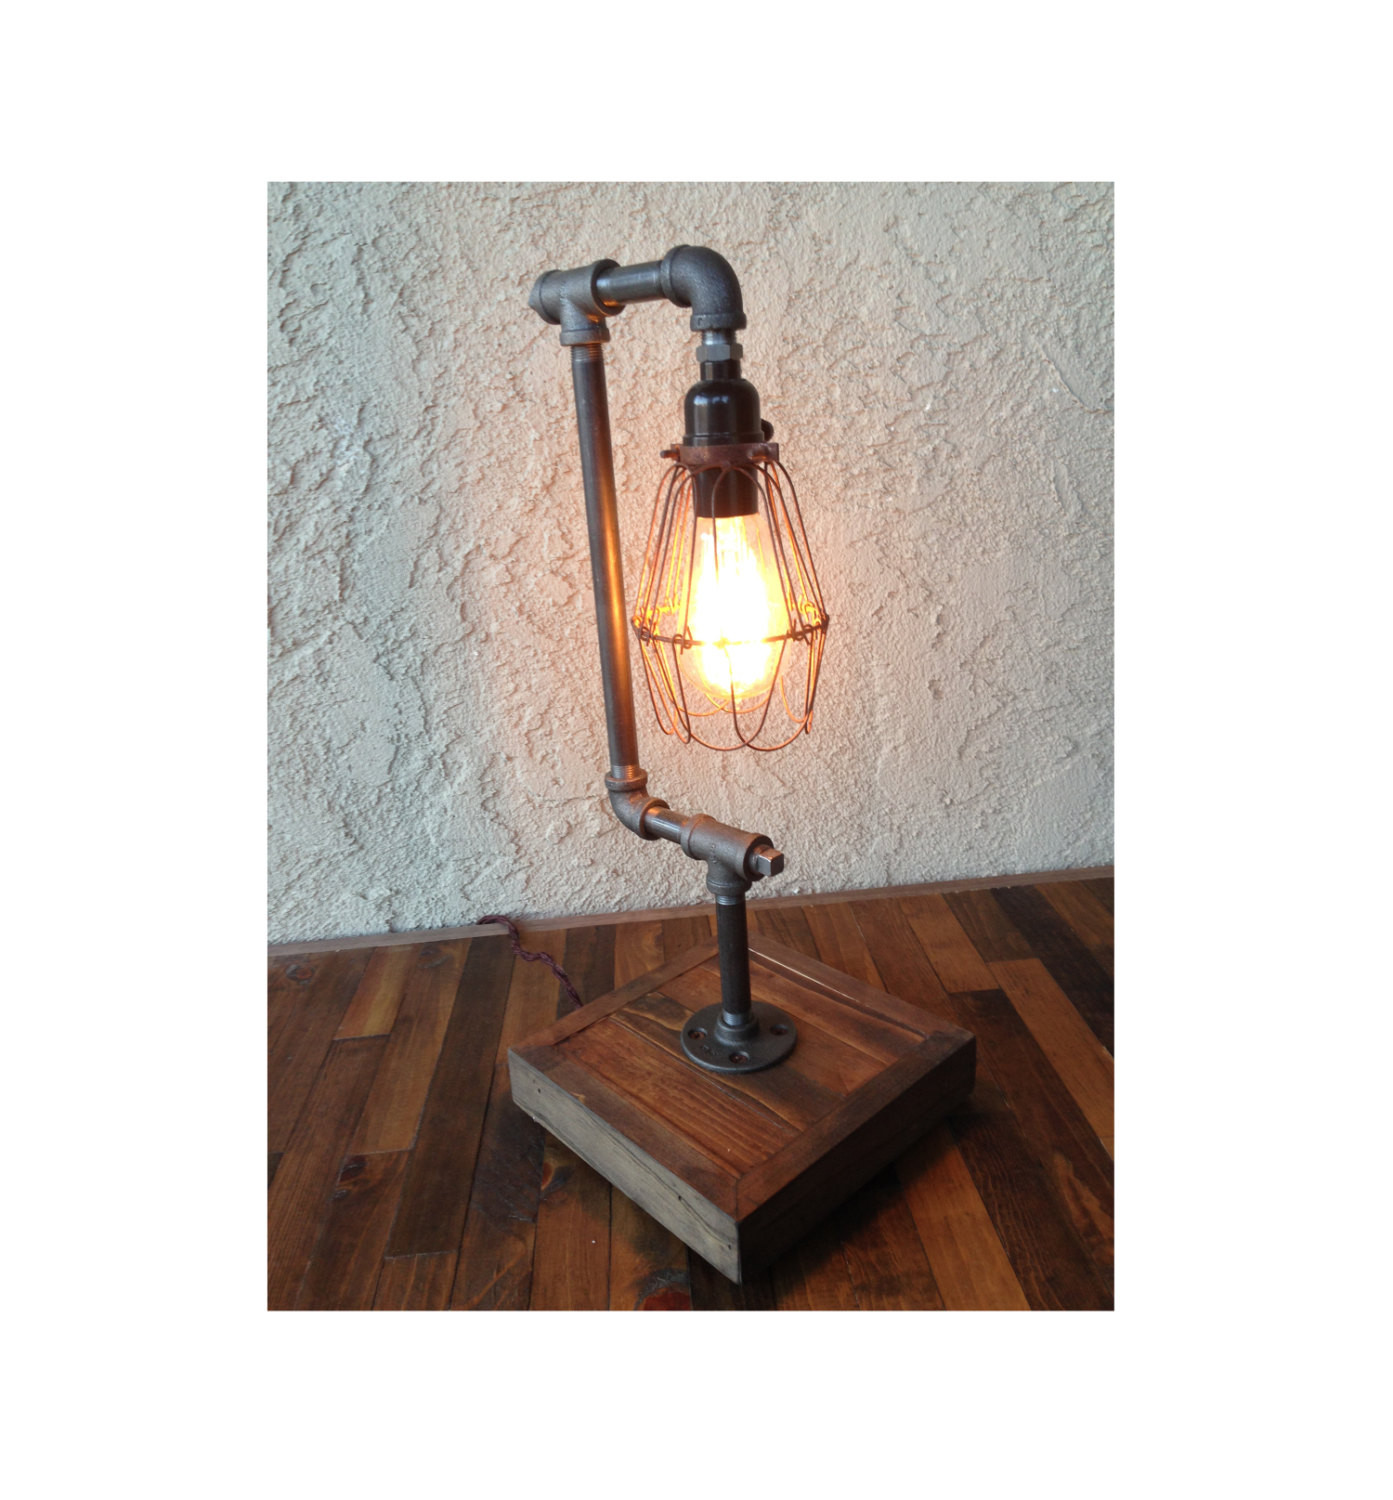 Best ideas about Edison Desk Lamp . Save or Pin Edison Desk Lamp BULB INCLUDED Steel Pipe Reclaimed Wood Now.